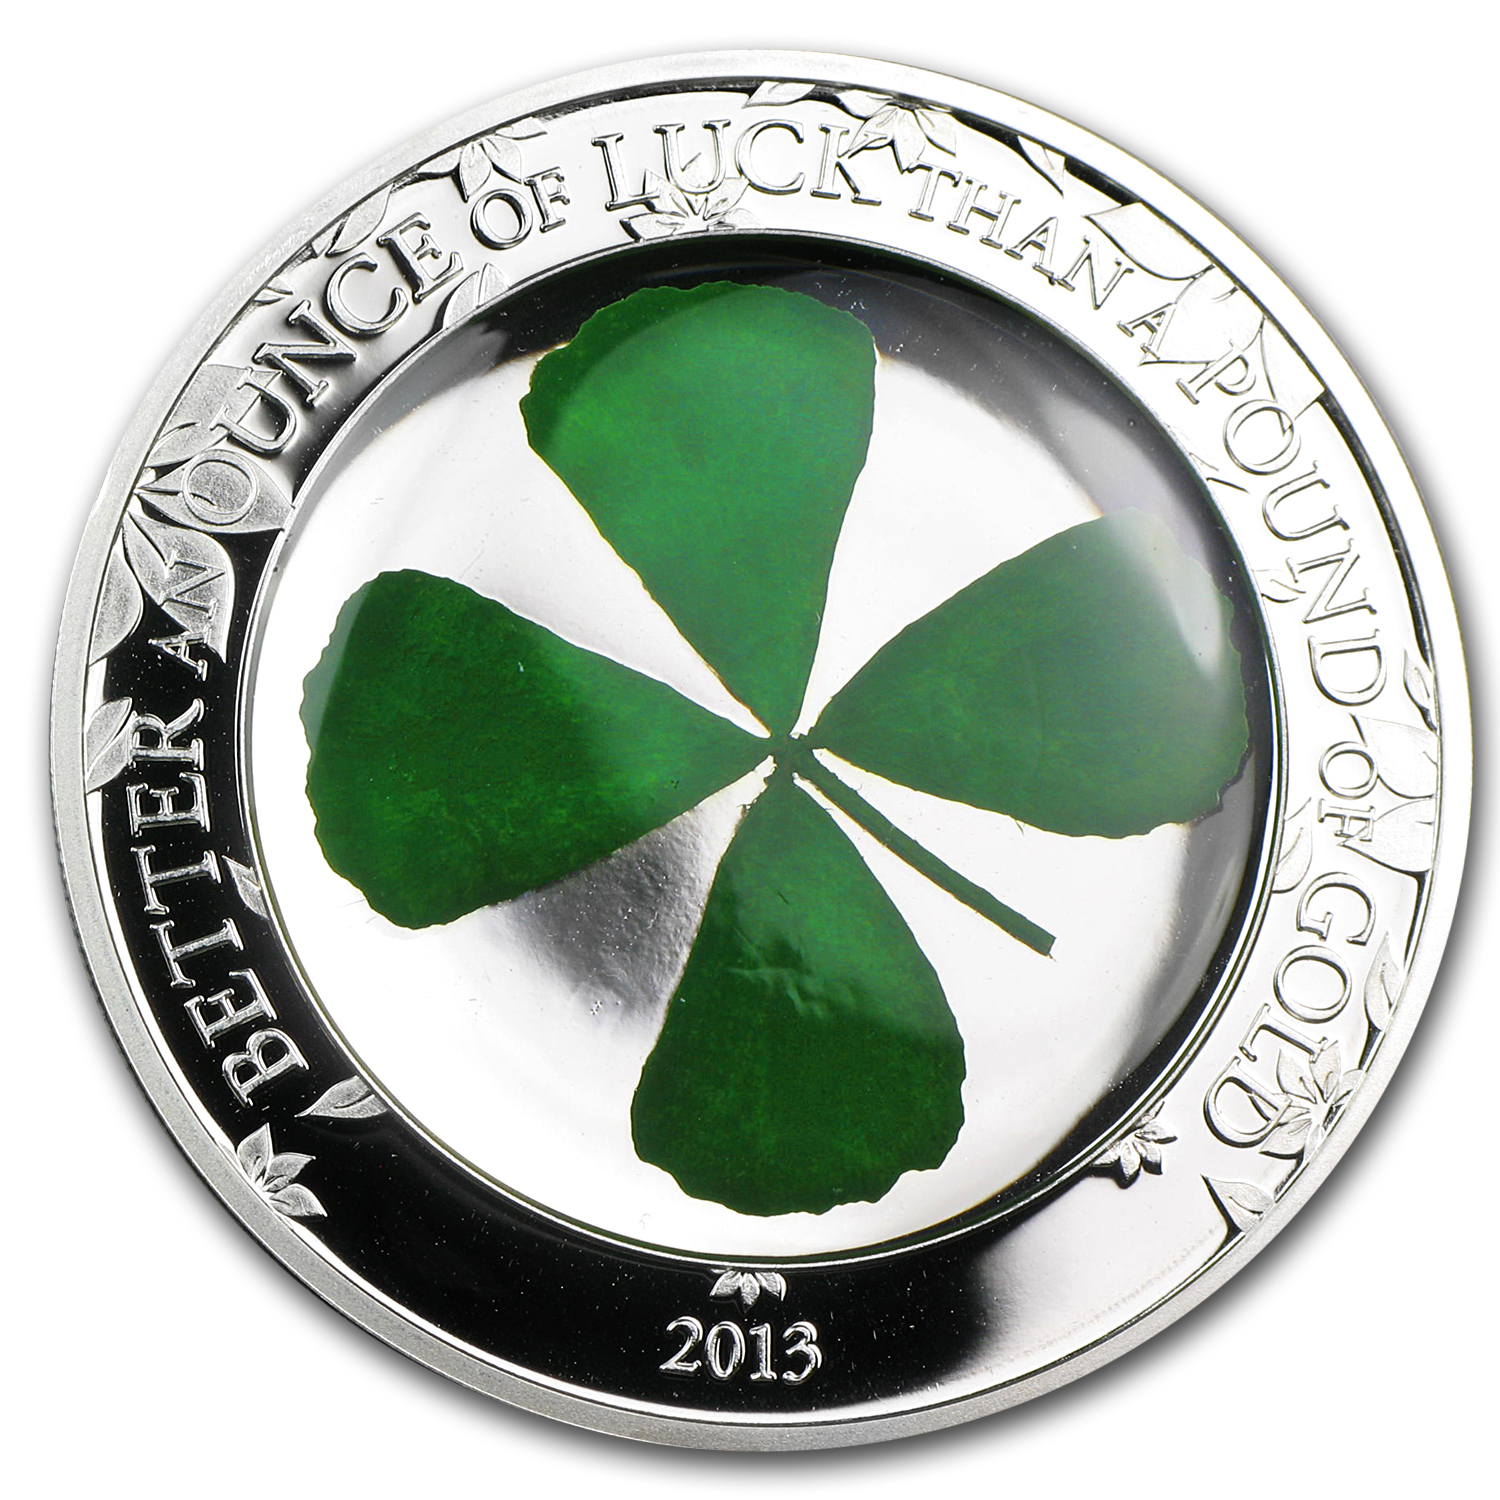 2013 Palau Proof Silver $5 Four-Leaf Clover Ounce of Luck